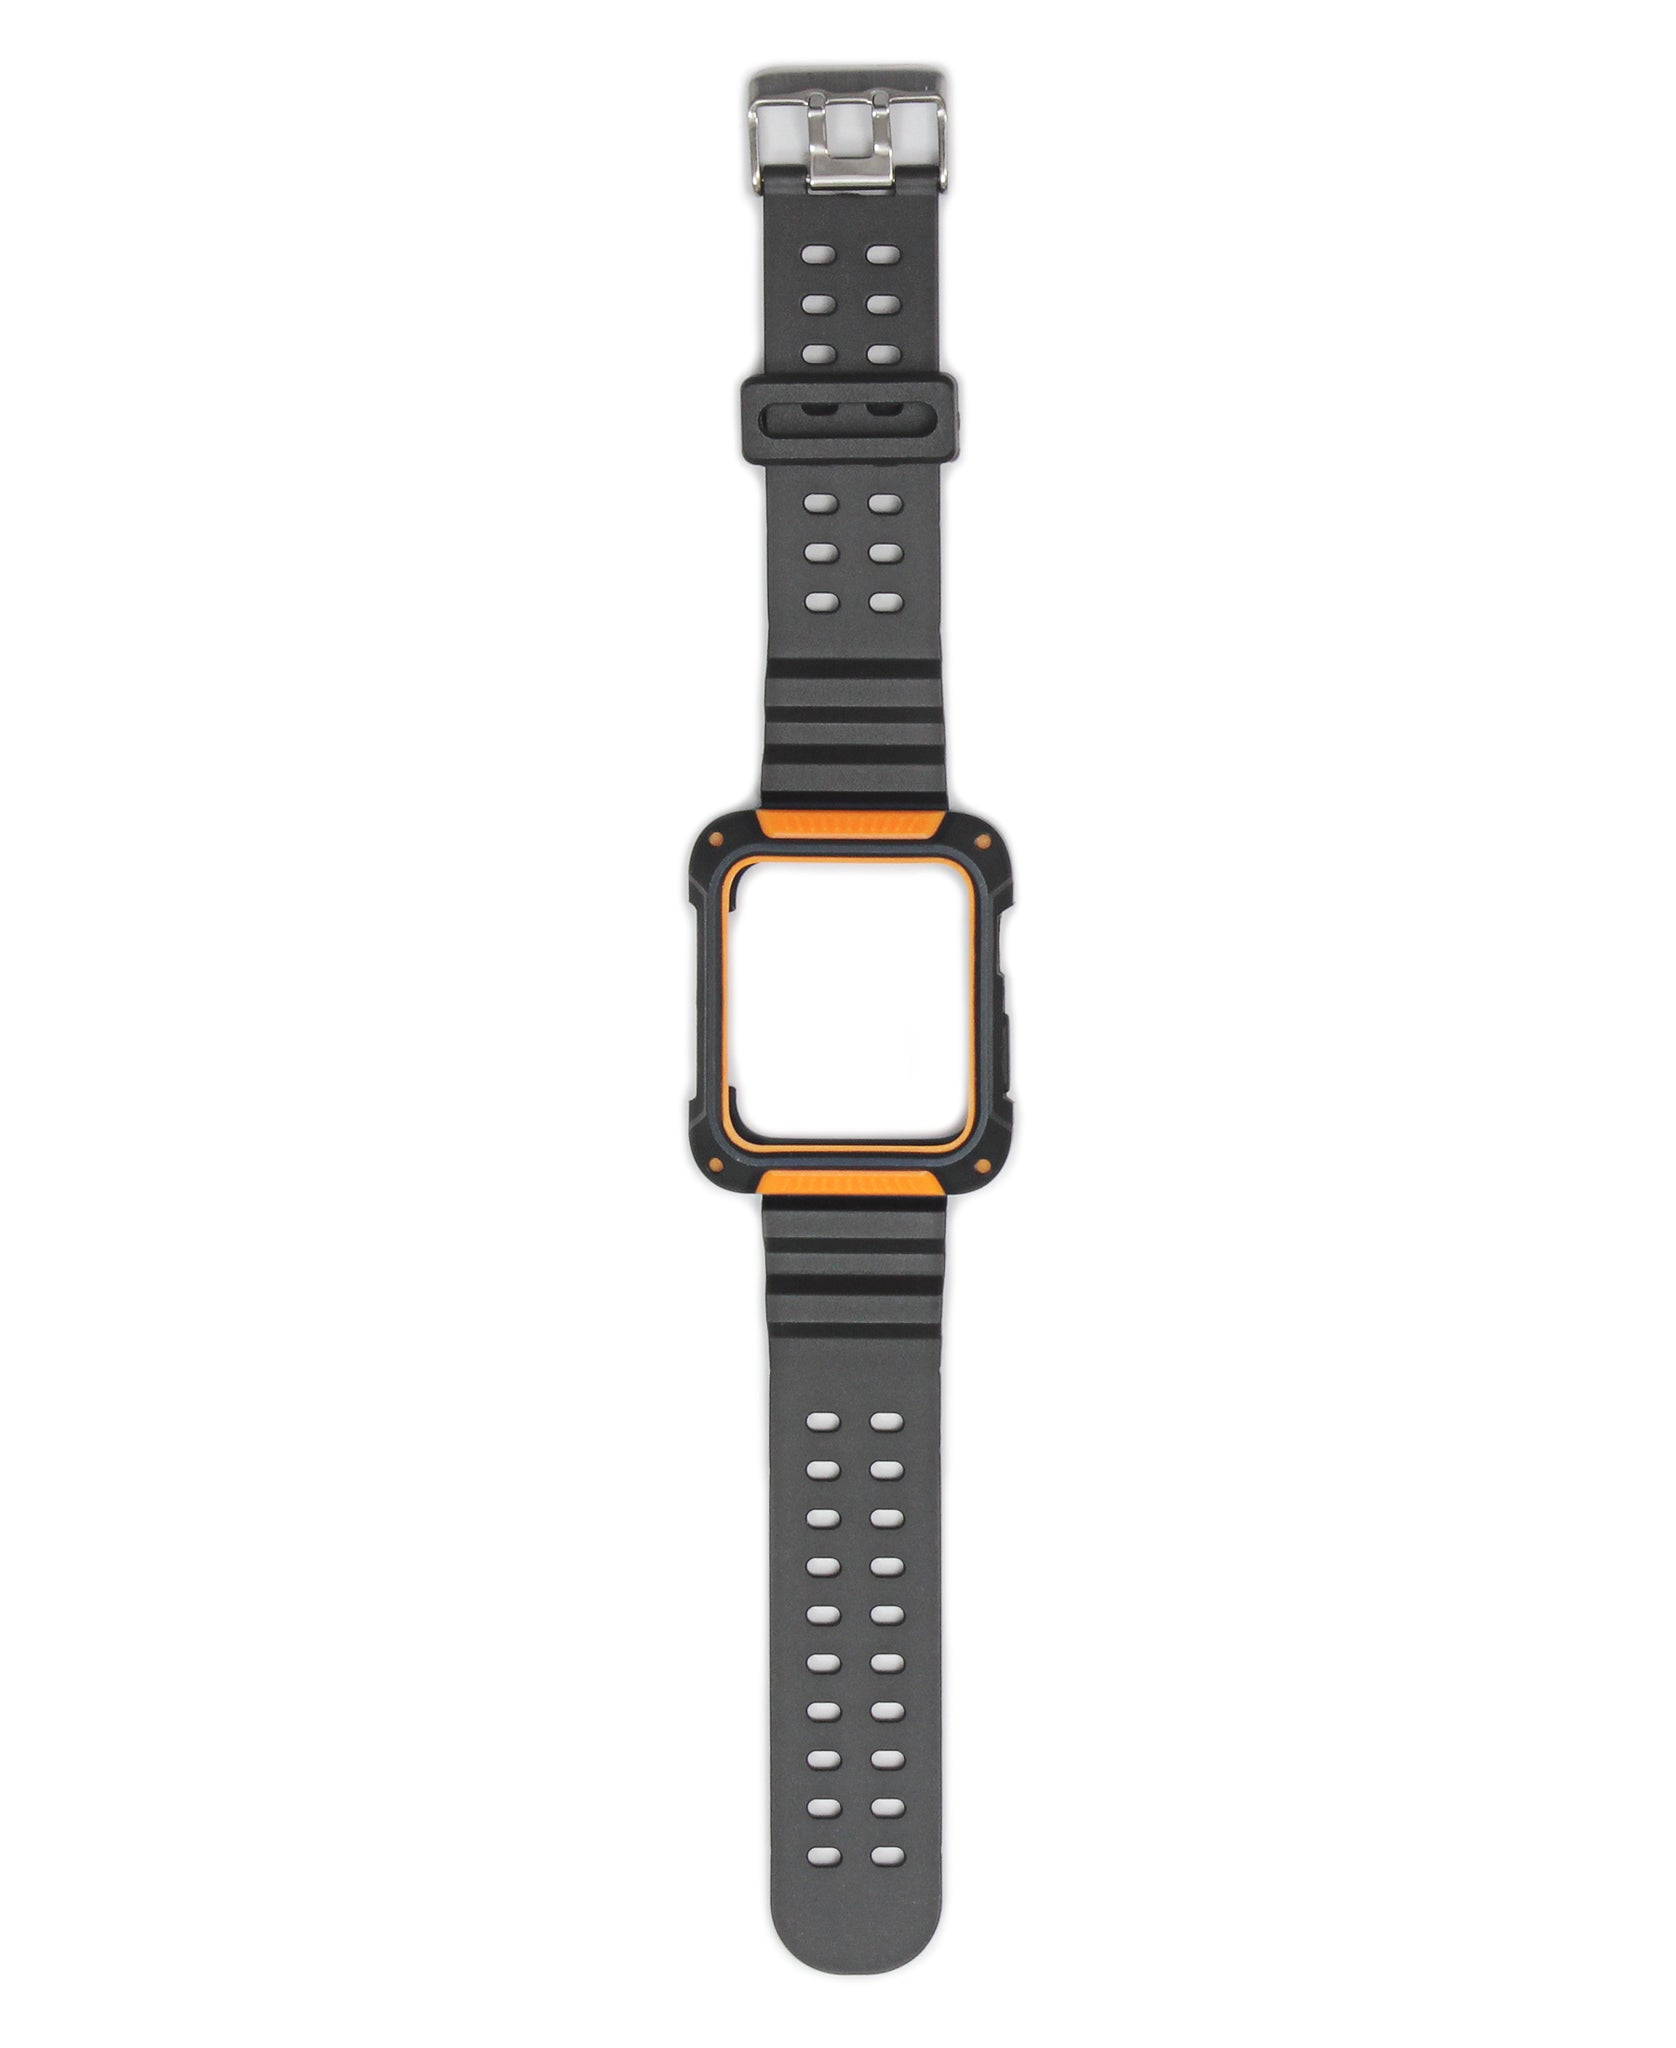 44mm Apple Watch Band With Cover - Orange